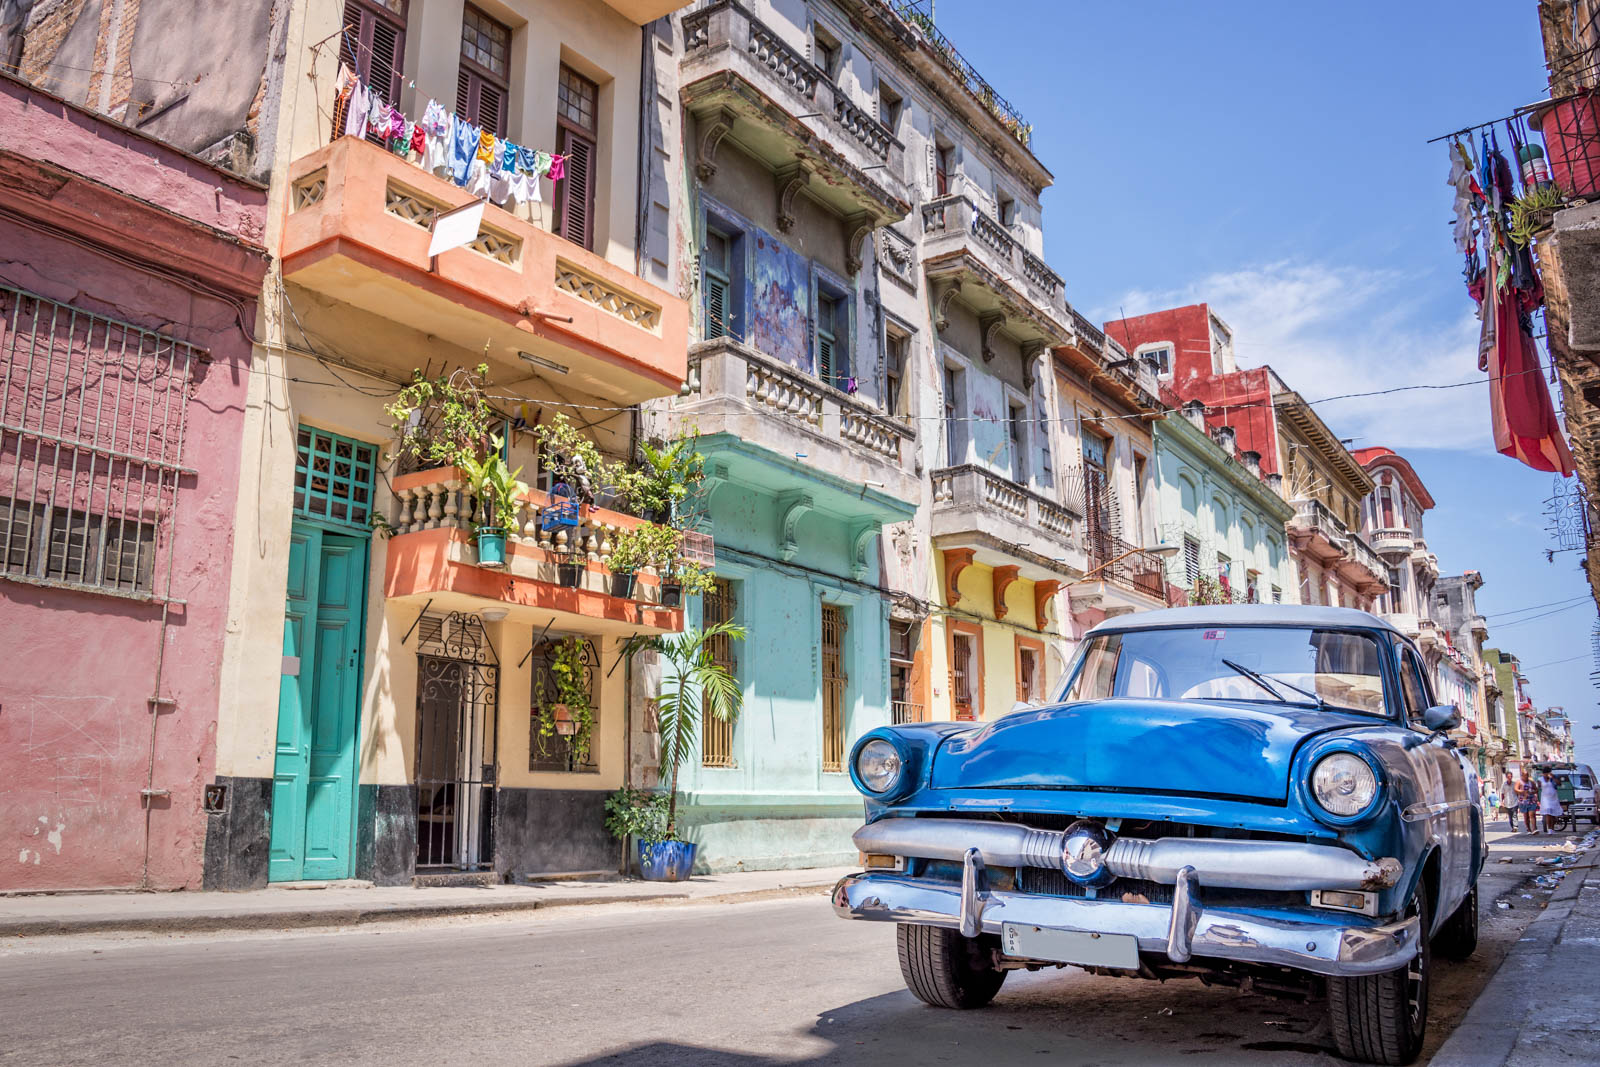 Vintage classic American car in Havana, Cuba on day trips from Miami to Cuba.